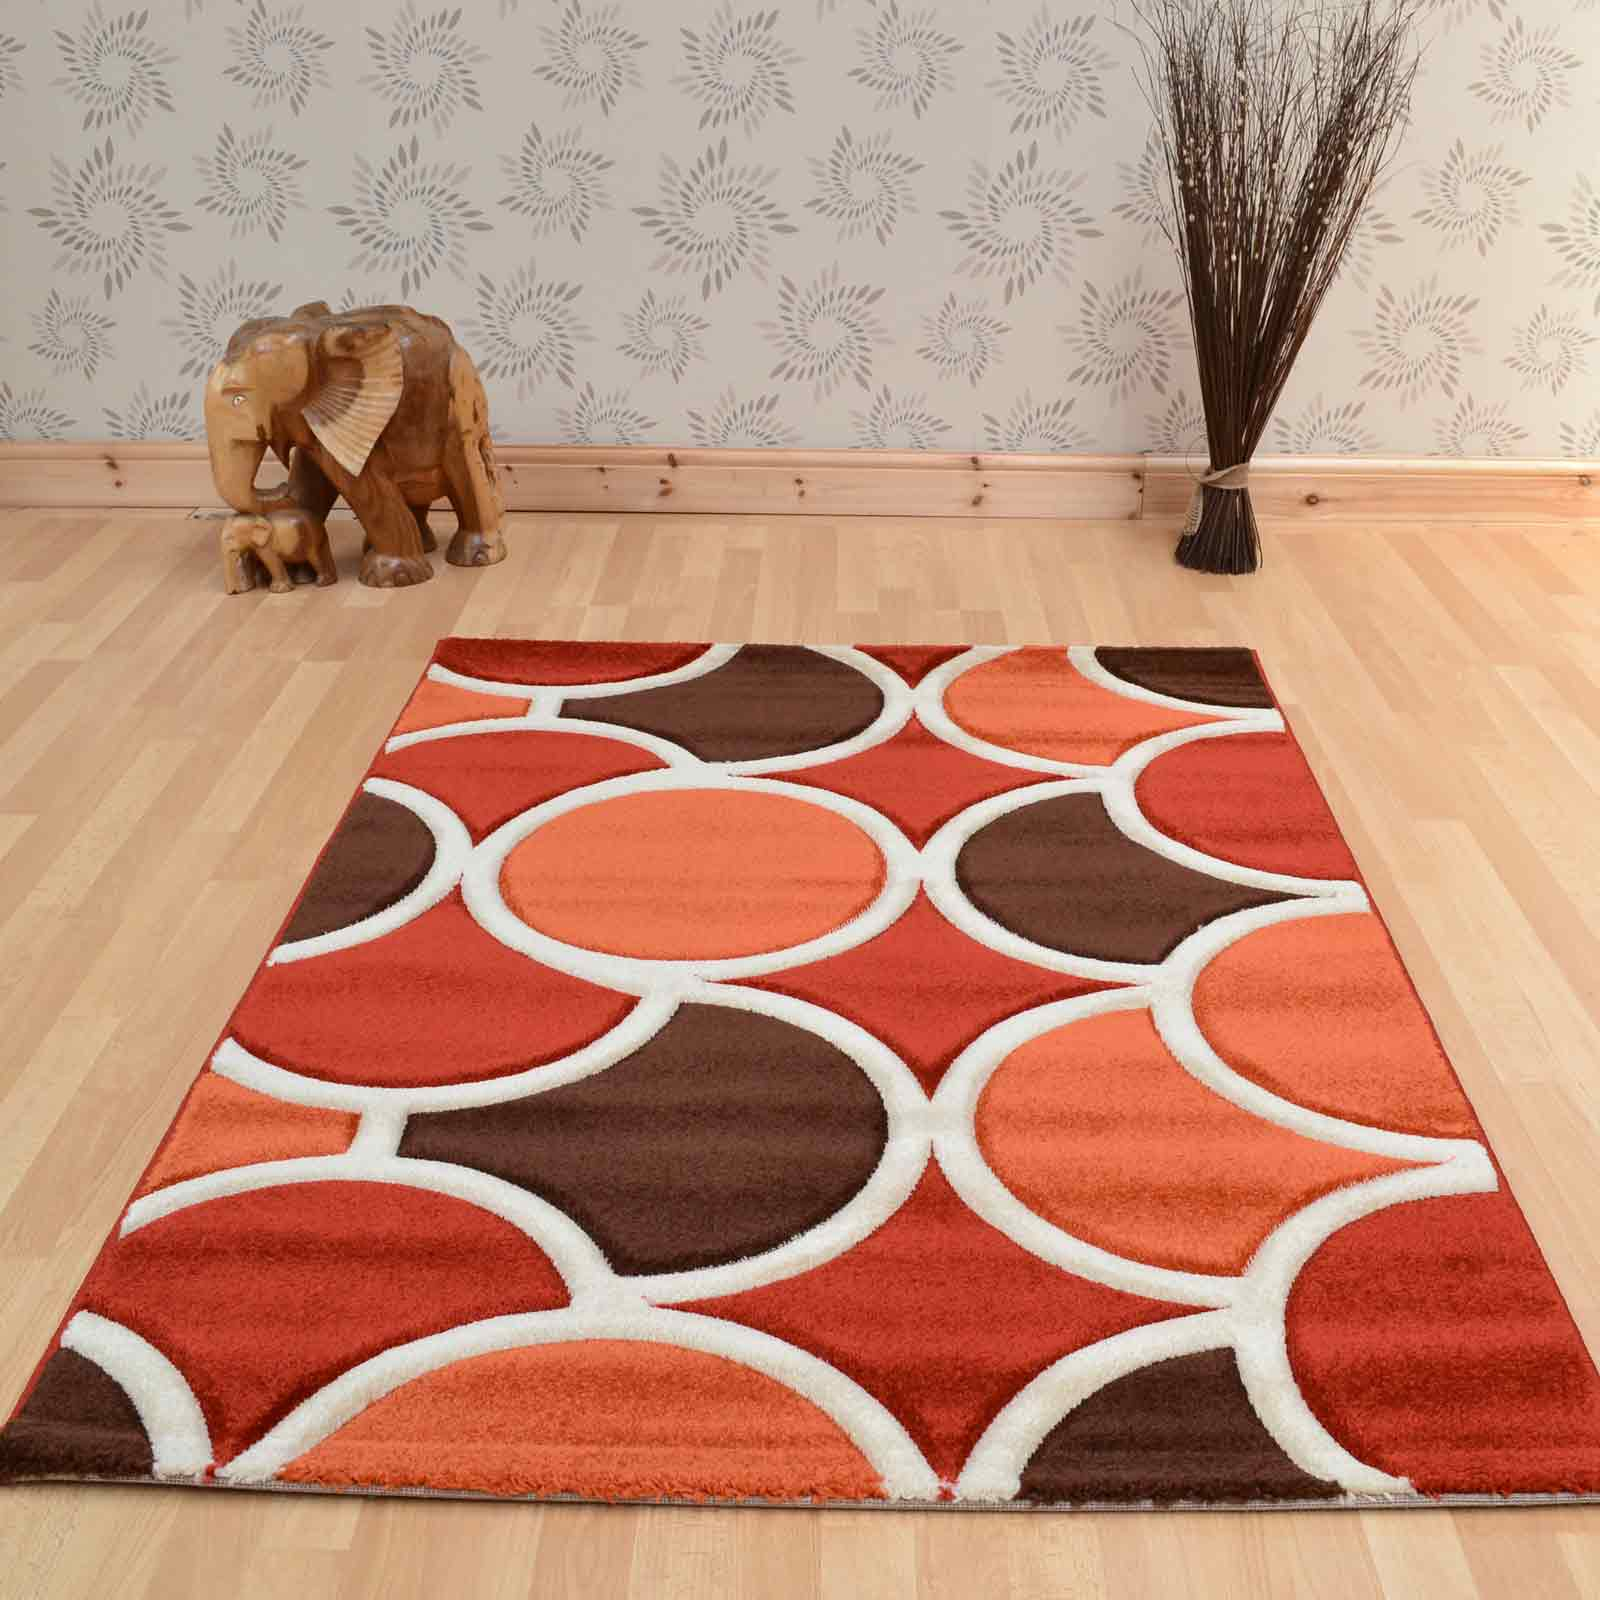 Terra Cotta Rugs Home Decor